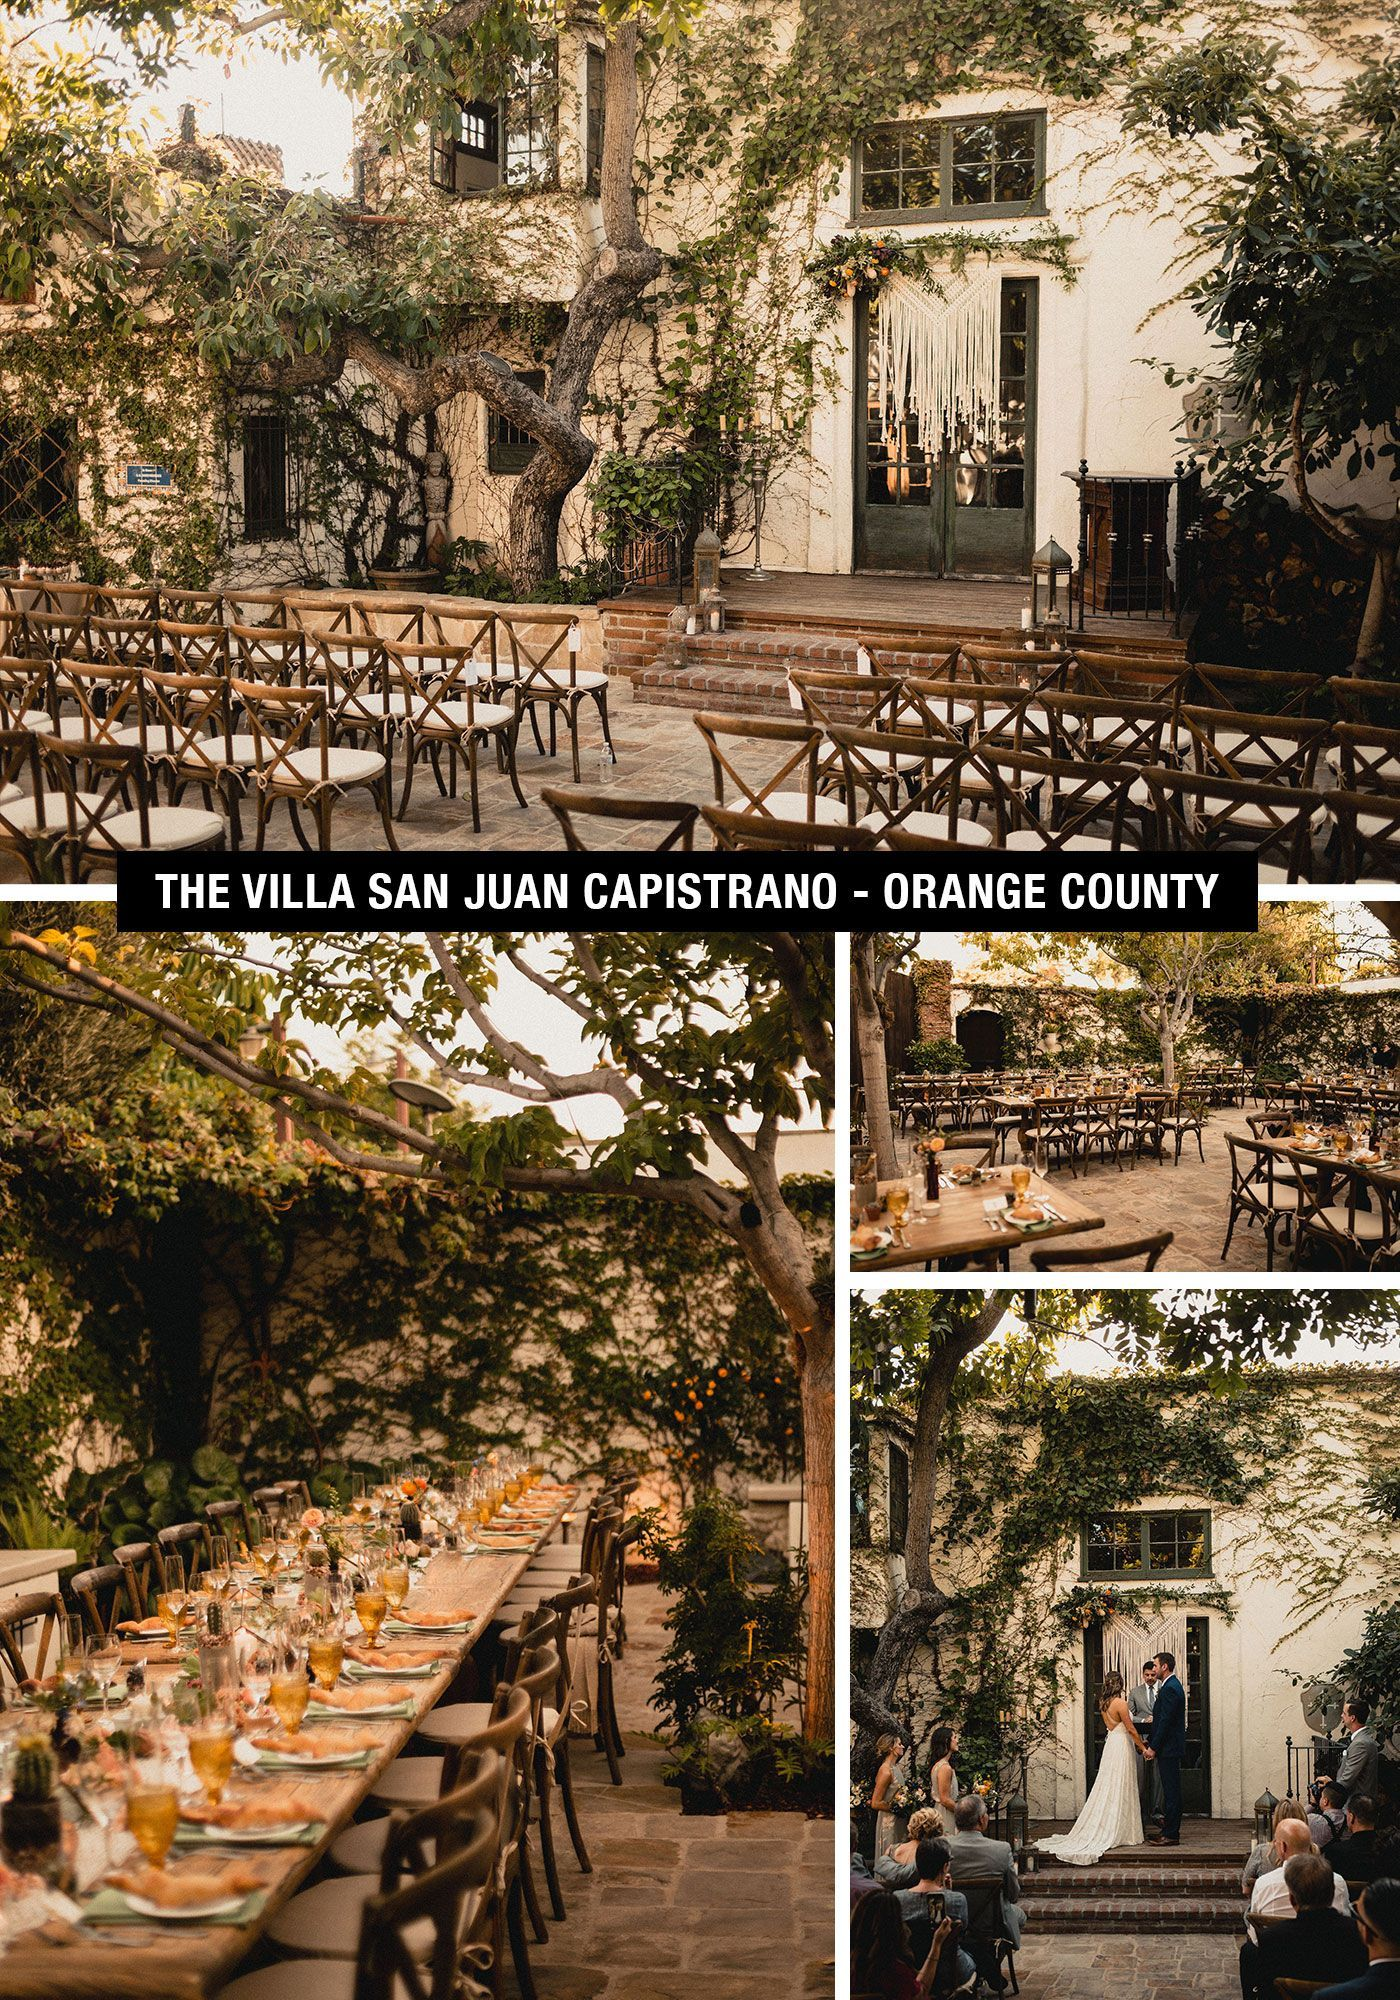 Definitive List Of The Best Outdoor Wedding Venues From Los Angeles To Orange County Definitive List Of The Best Outdoor Weddin Outdoor Wedding Venues